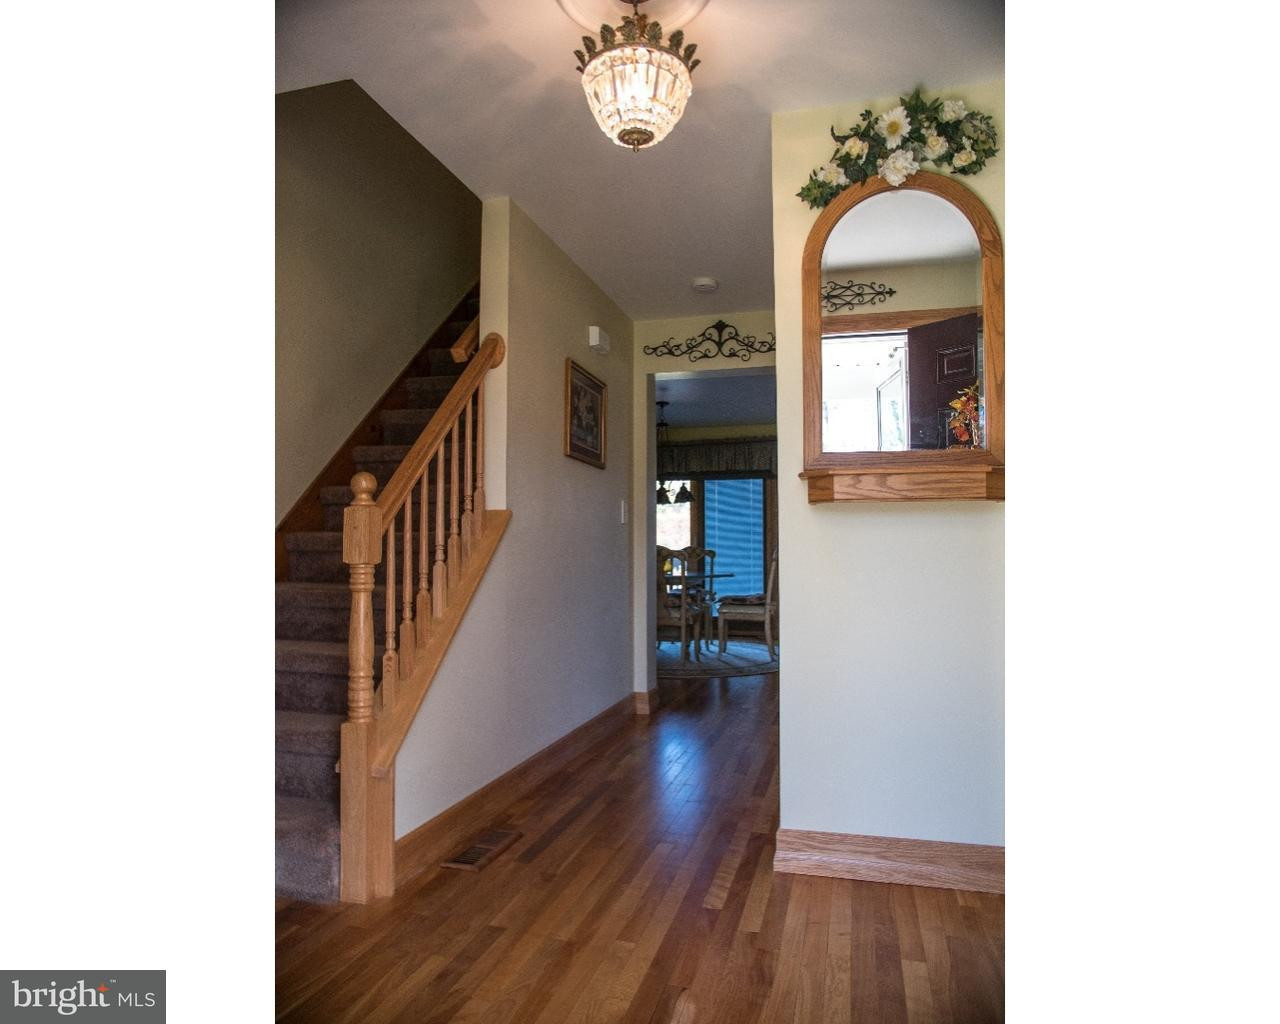 hardwood floor refinishing medford or of 1 country way lumberton new jersey 08048 single family home for sales inside additional photo for property listing at 1 country way lumberton new jersey 08048 united states